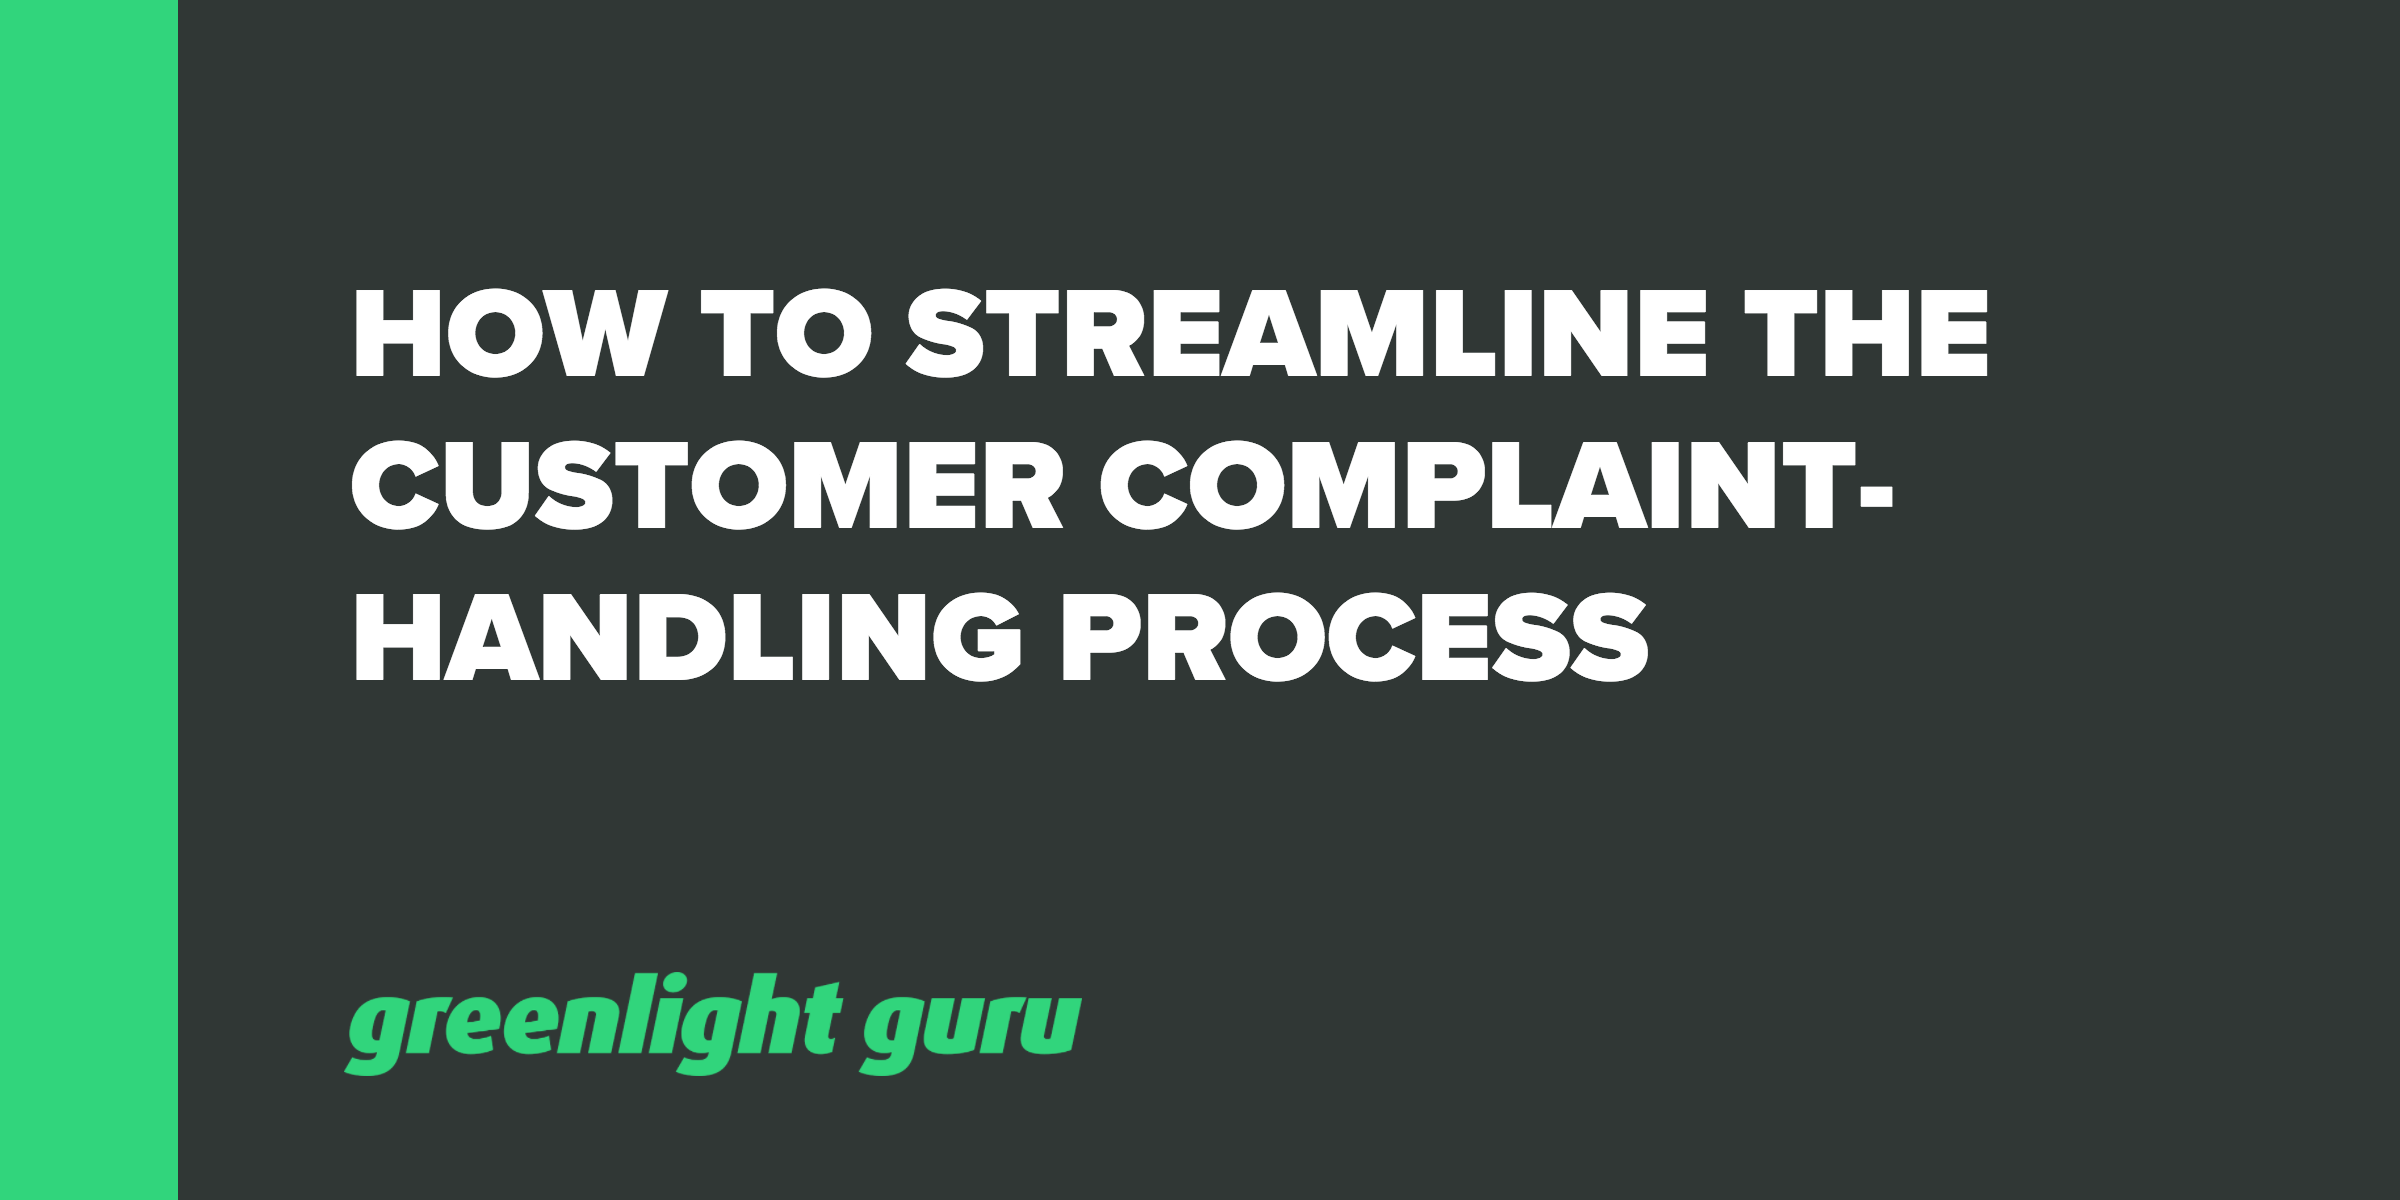 How to Streamline the Customer Complaint Handling Process - Featured Image